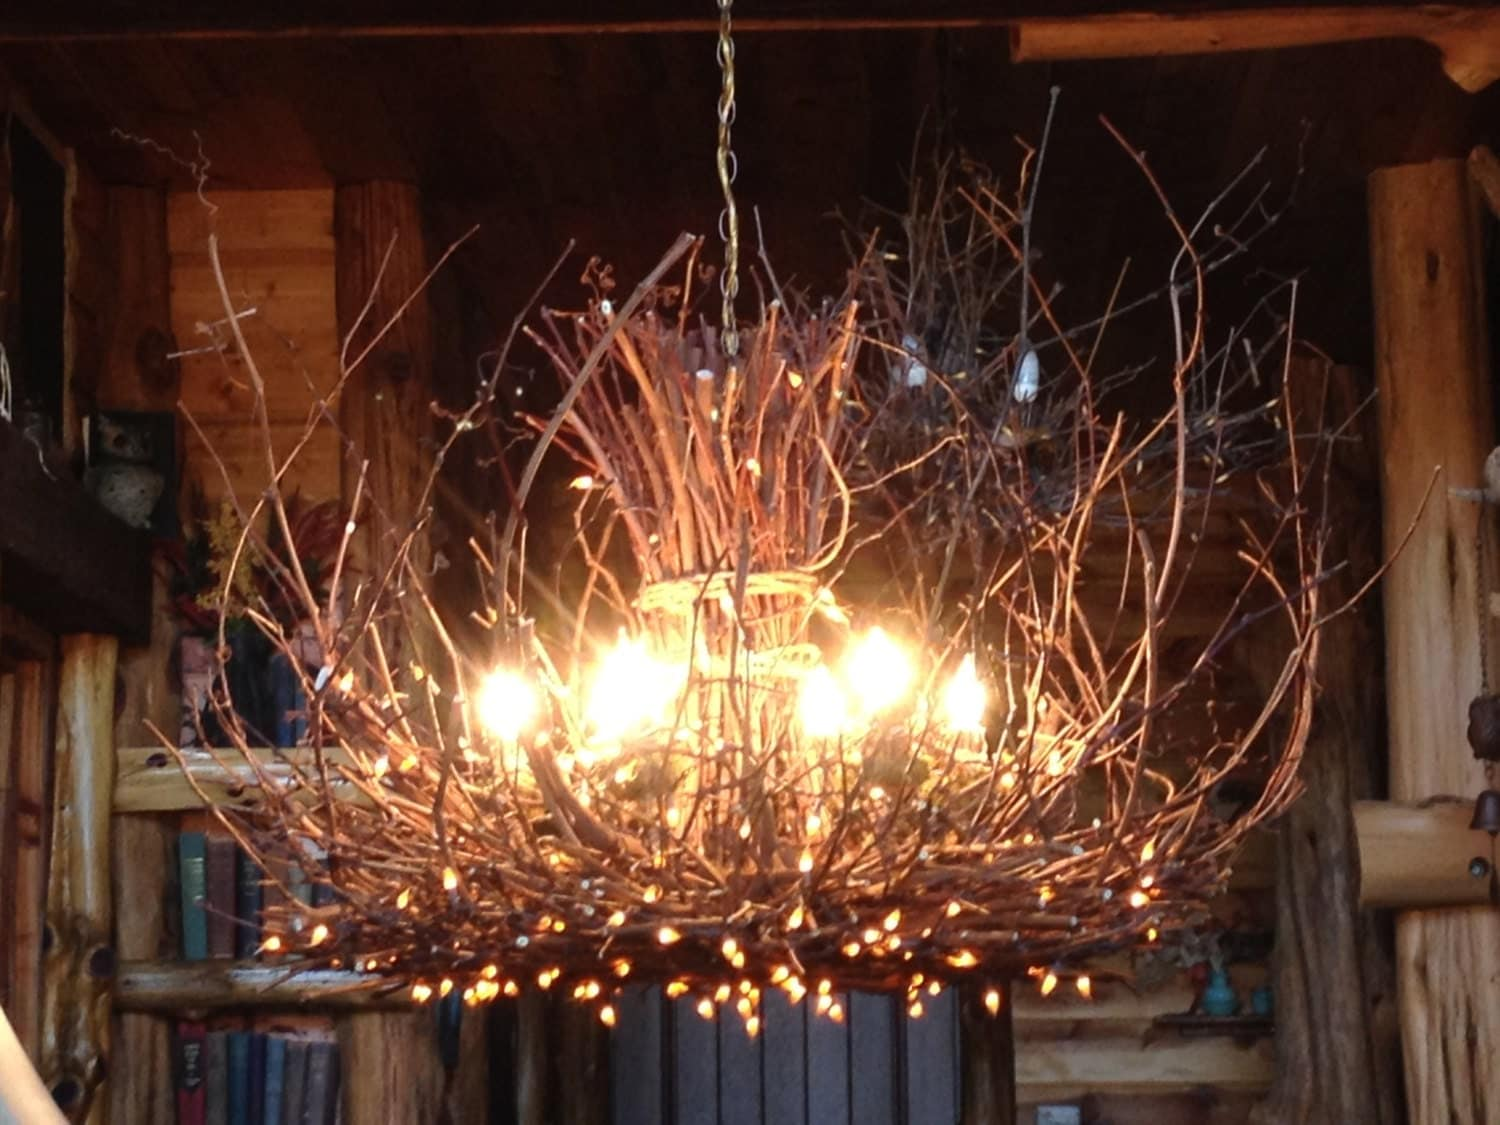 Cold mountain rustic chandelier lighting by Log cabin chandelier